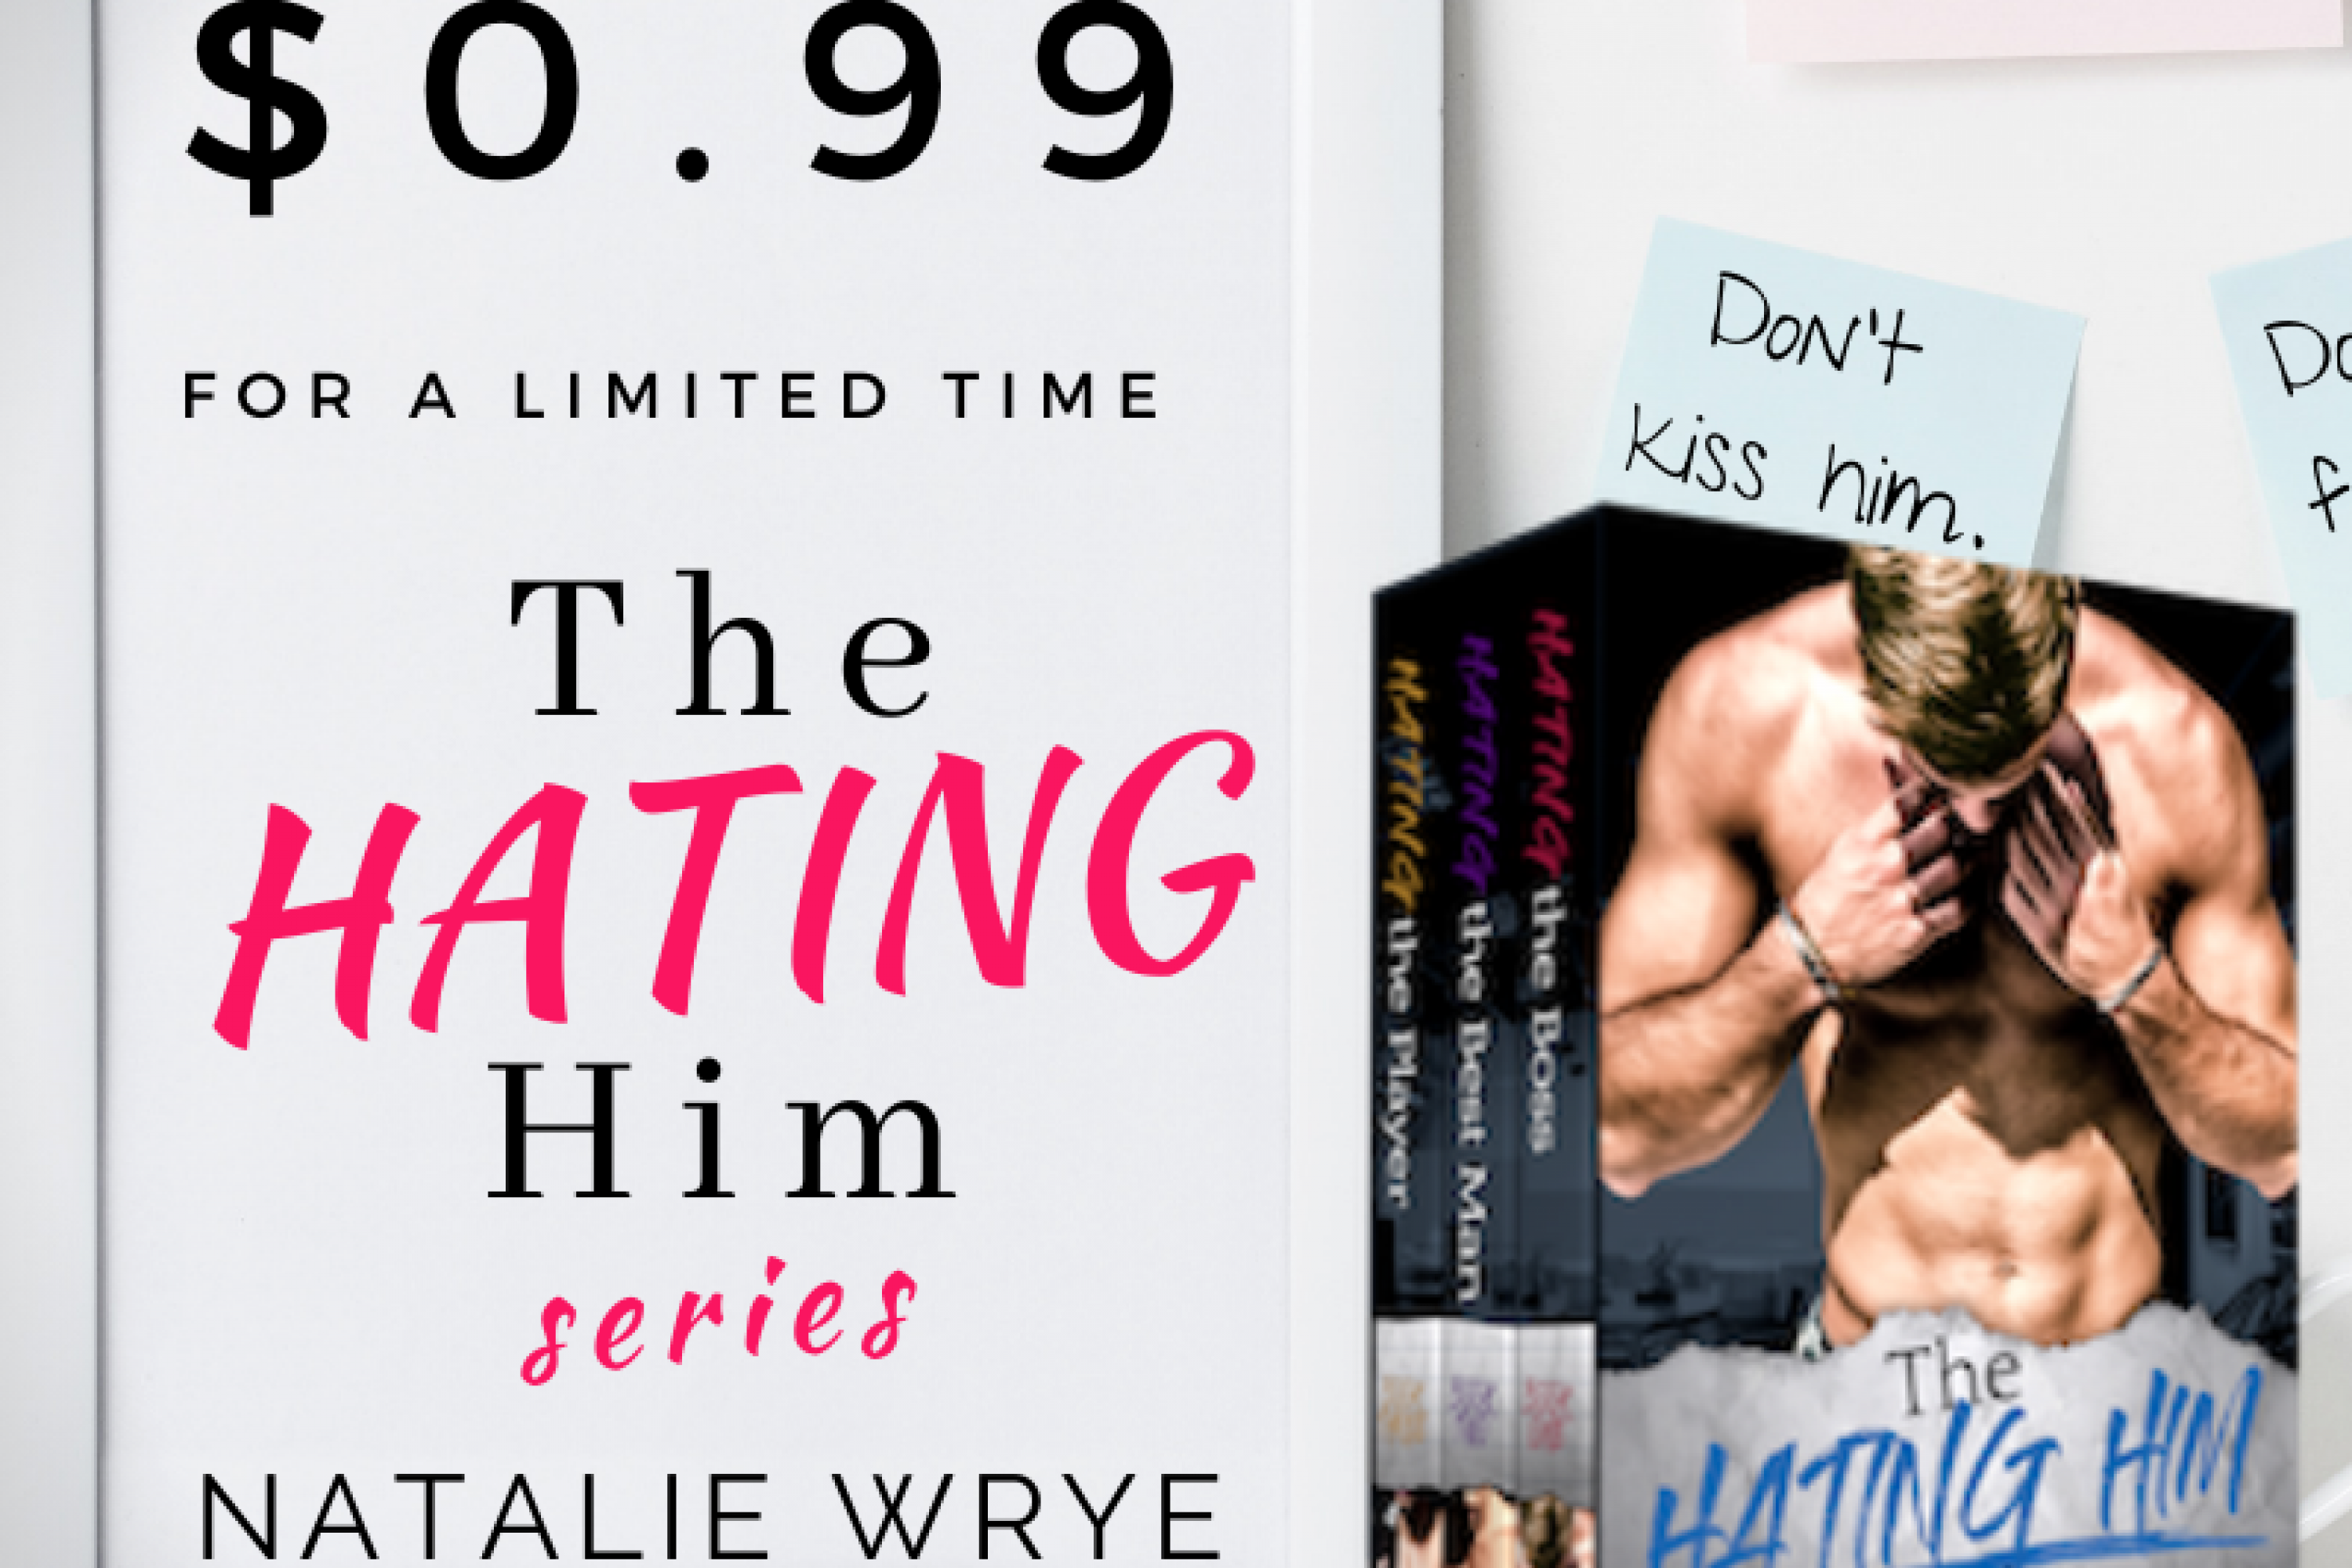 Sale: The Hating Him Series by Natalie Wrye is only 99c for a limited time